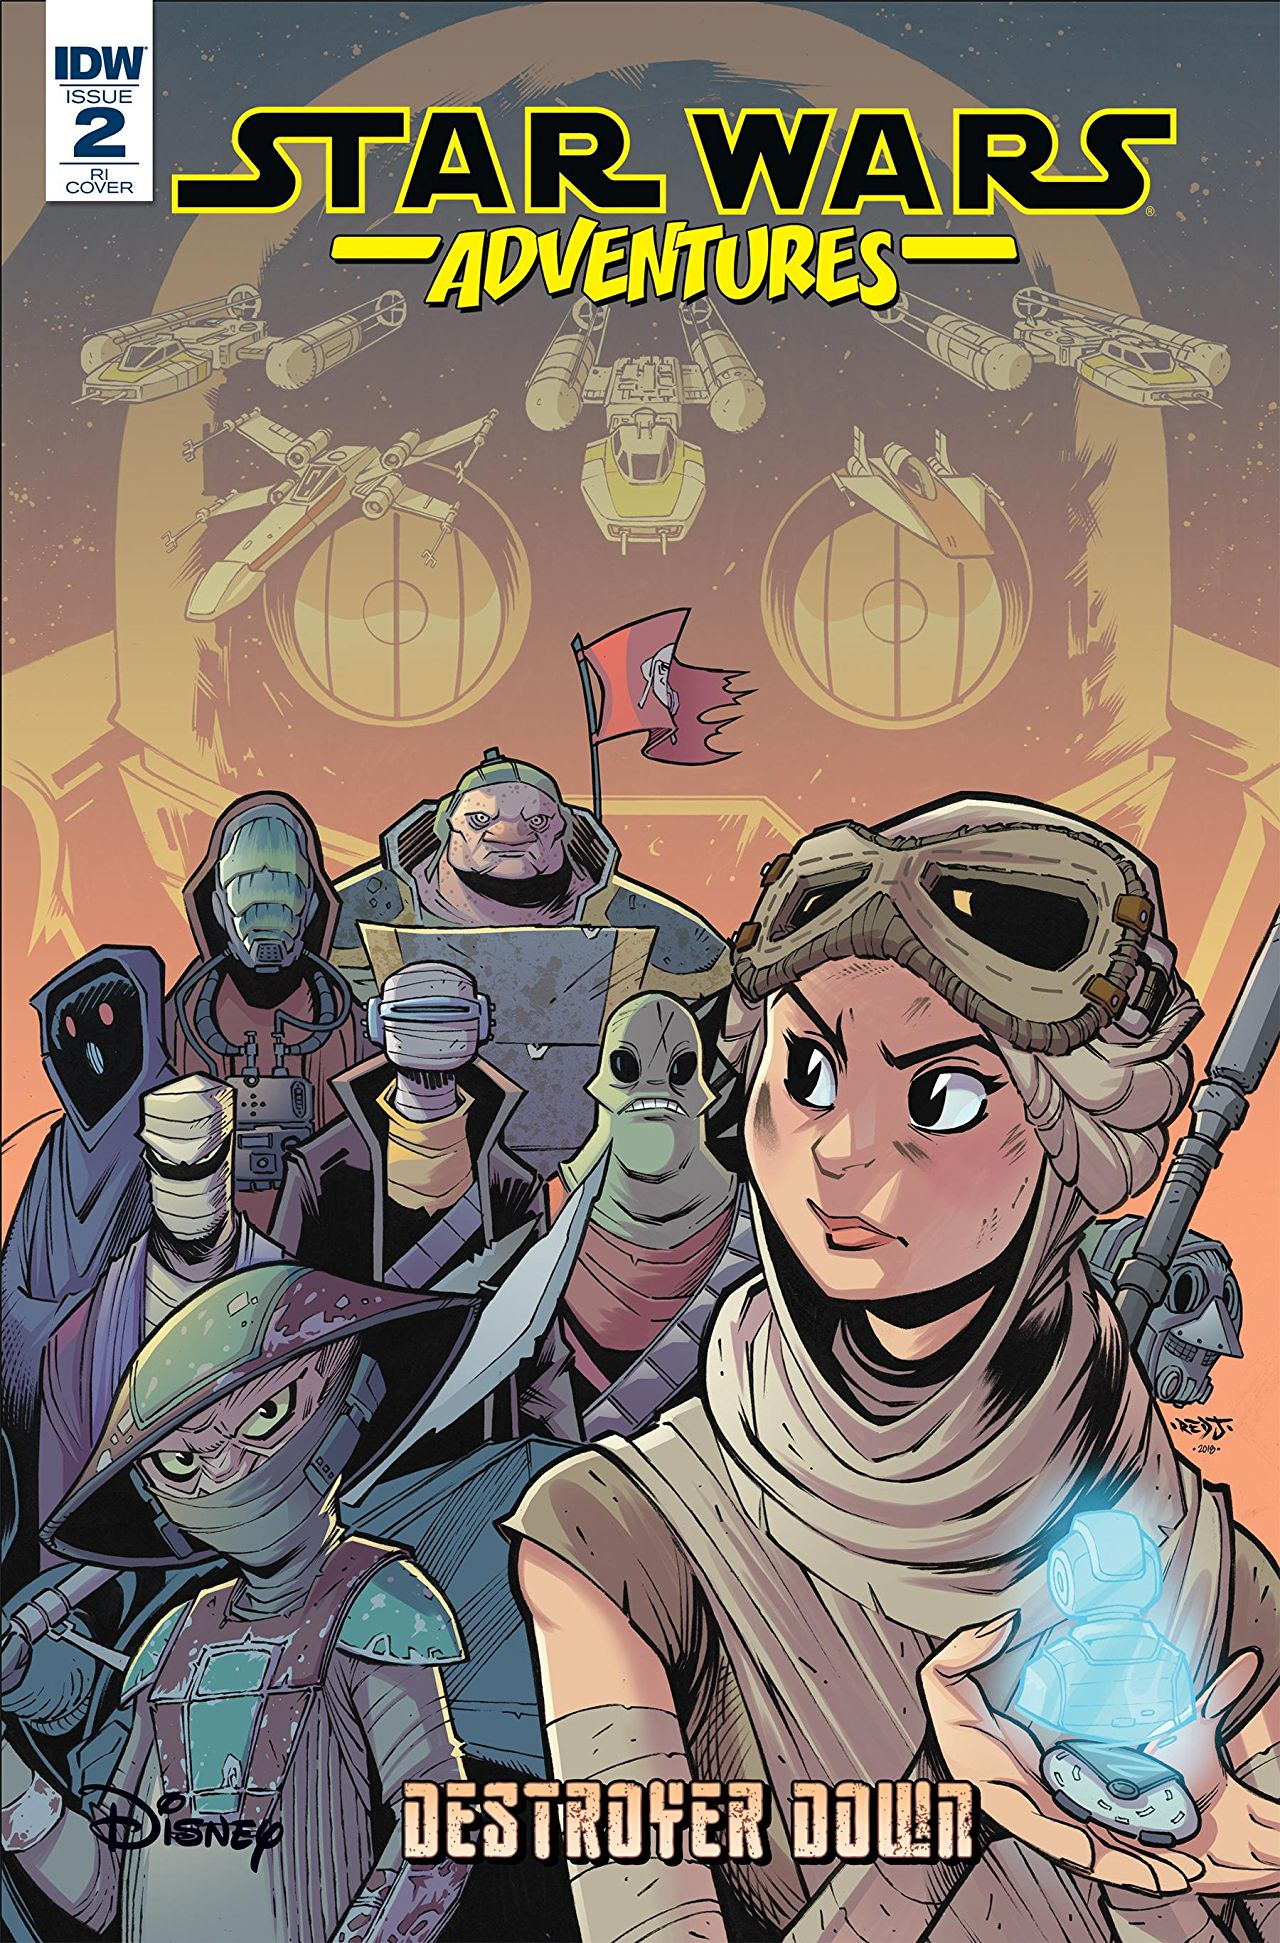 Star Wars Adventures: Destroyer Down 2 - Retail Incentive Cover (Jon Sommariva)